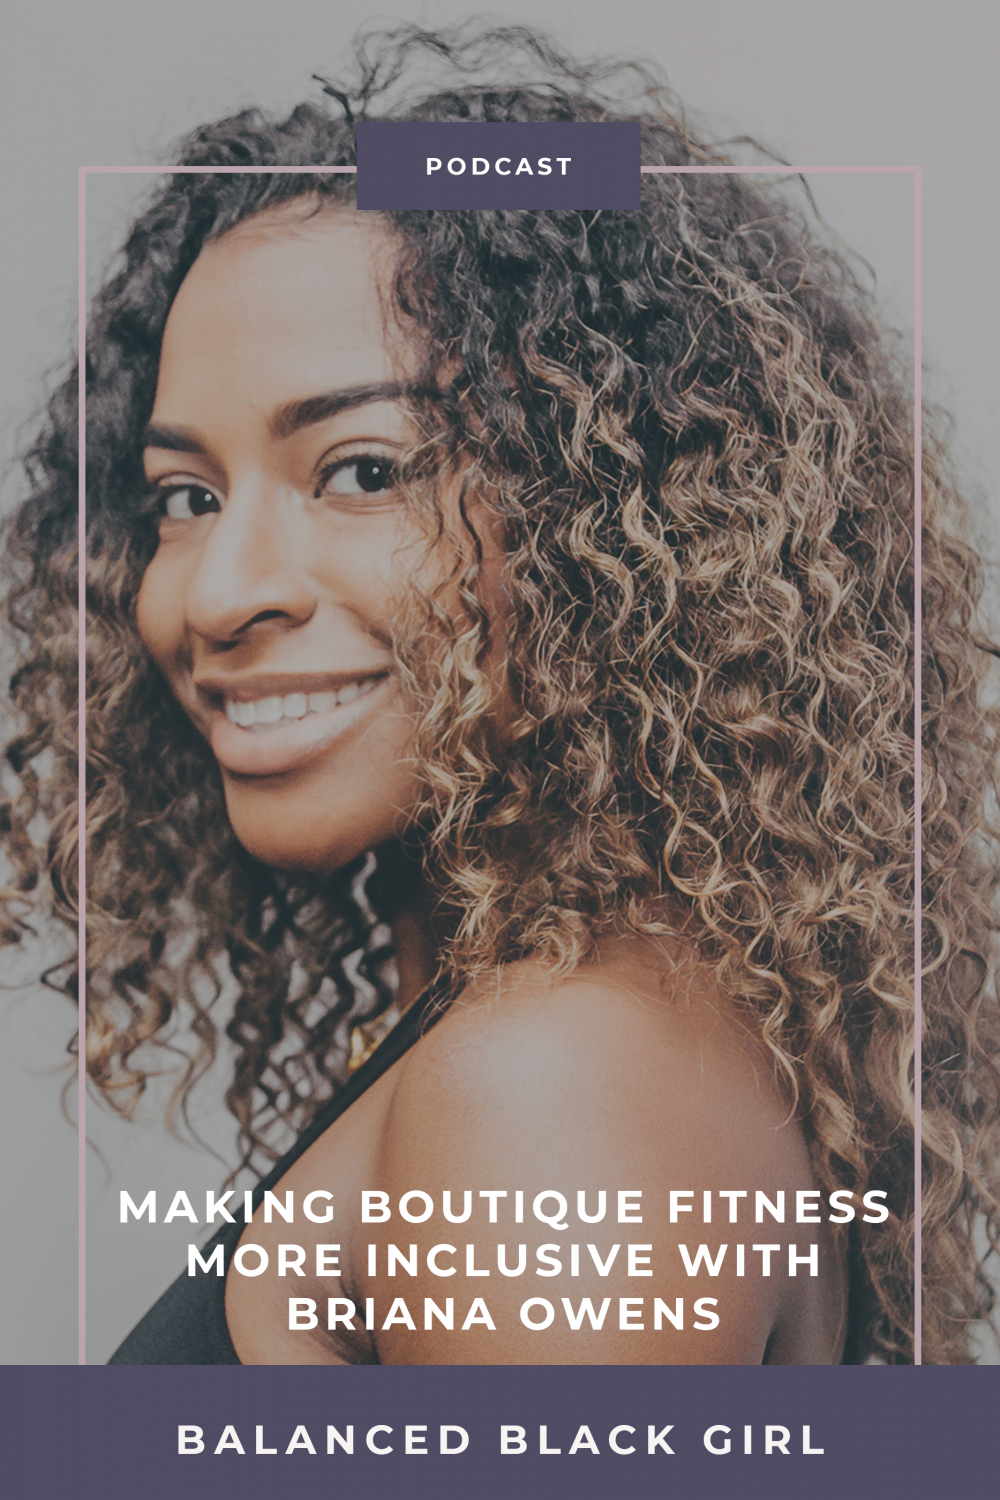 Episode 26: Making Boutique Fitness More Inclusive with Briana Owens of Spiked Spin